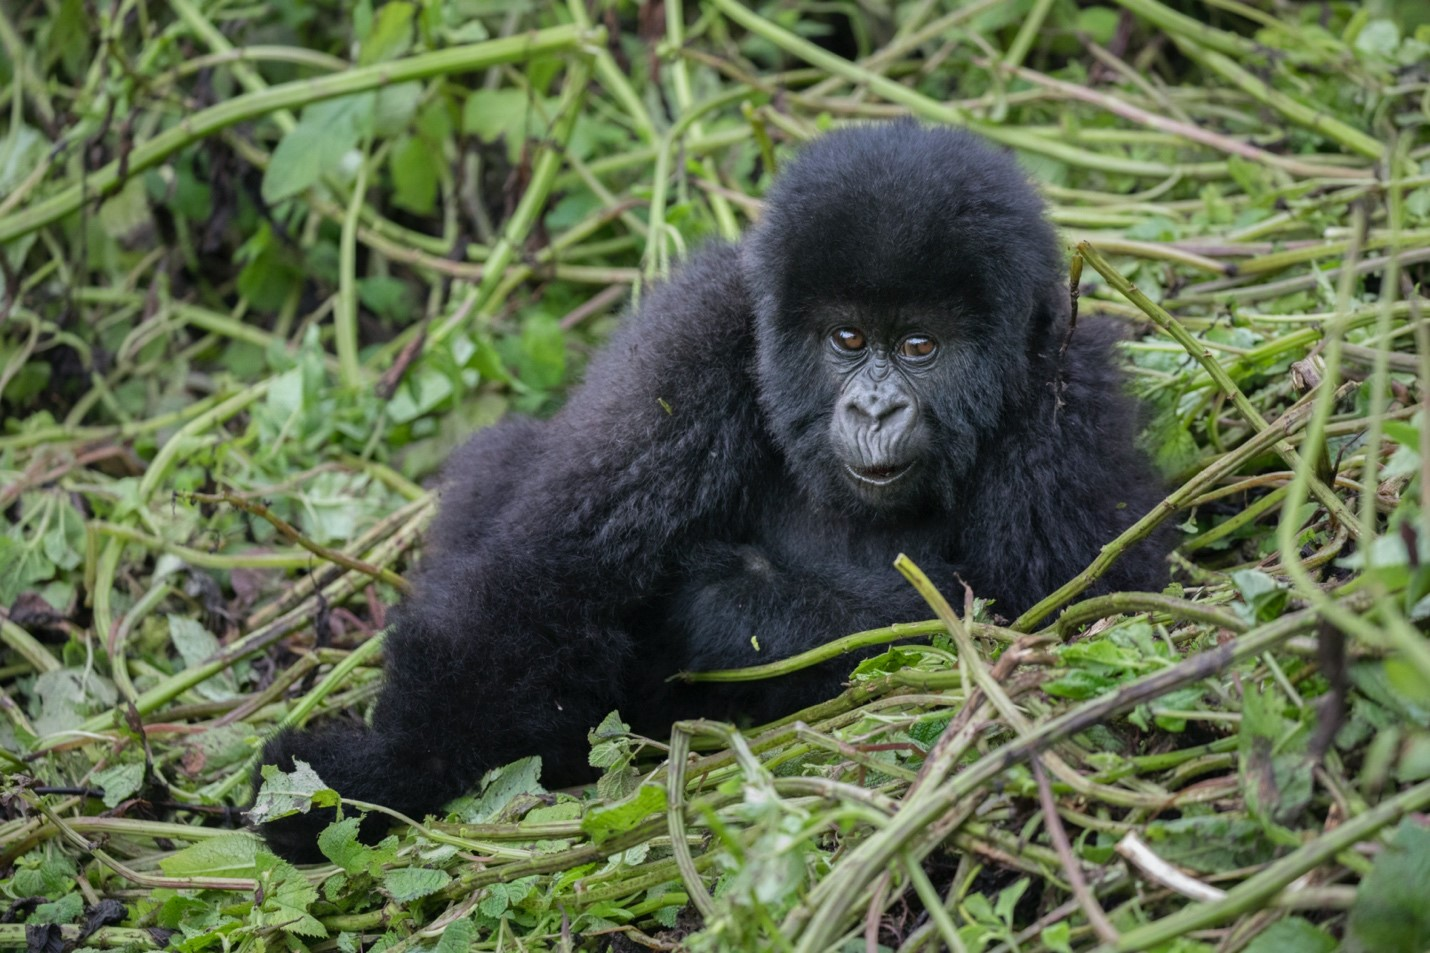 a baby gorilla poses for a photograph with a tangle of vines around it